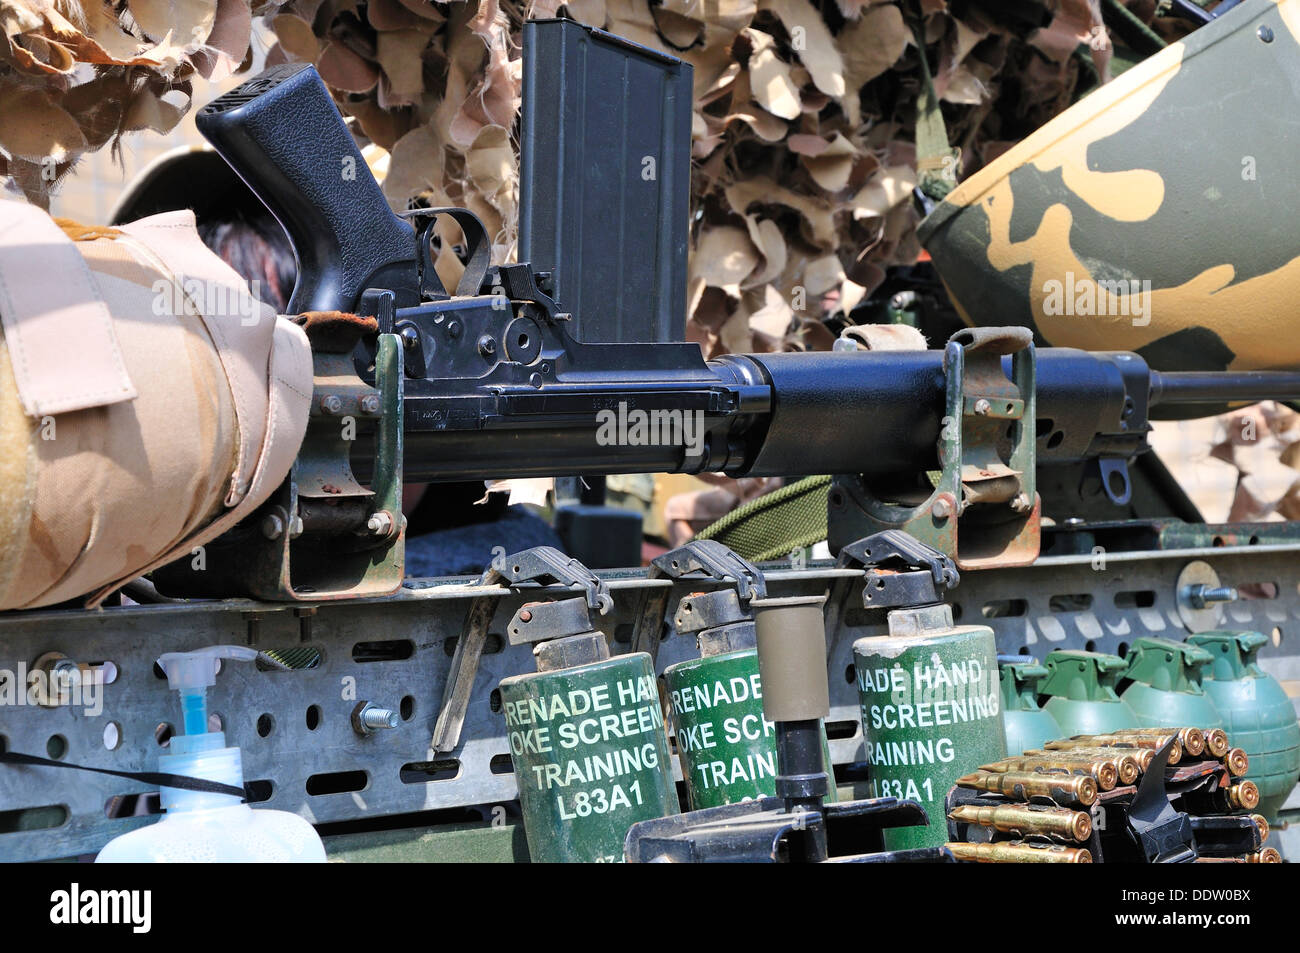 War and Peace Revival, July 2013. Folkestone Racecourse, Kent, England, UK. 7.62MM Rifle, hand grenades, camouflage - Stock Image